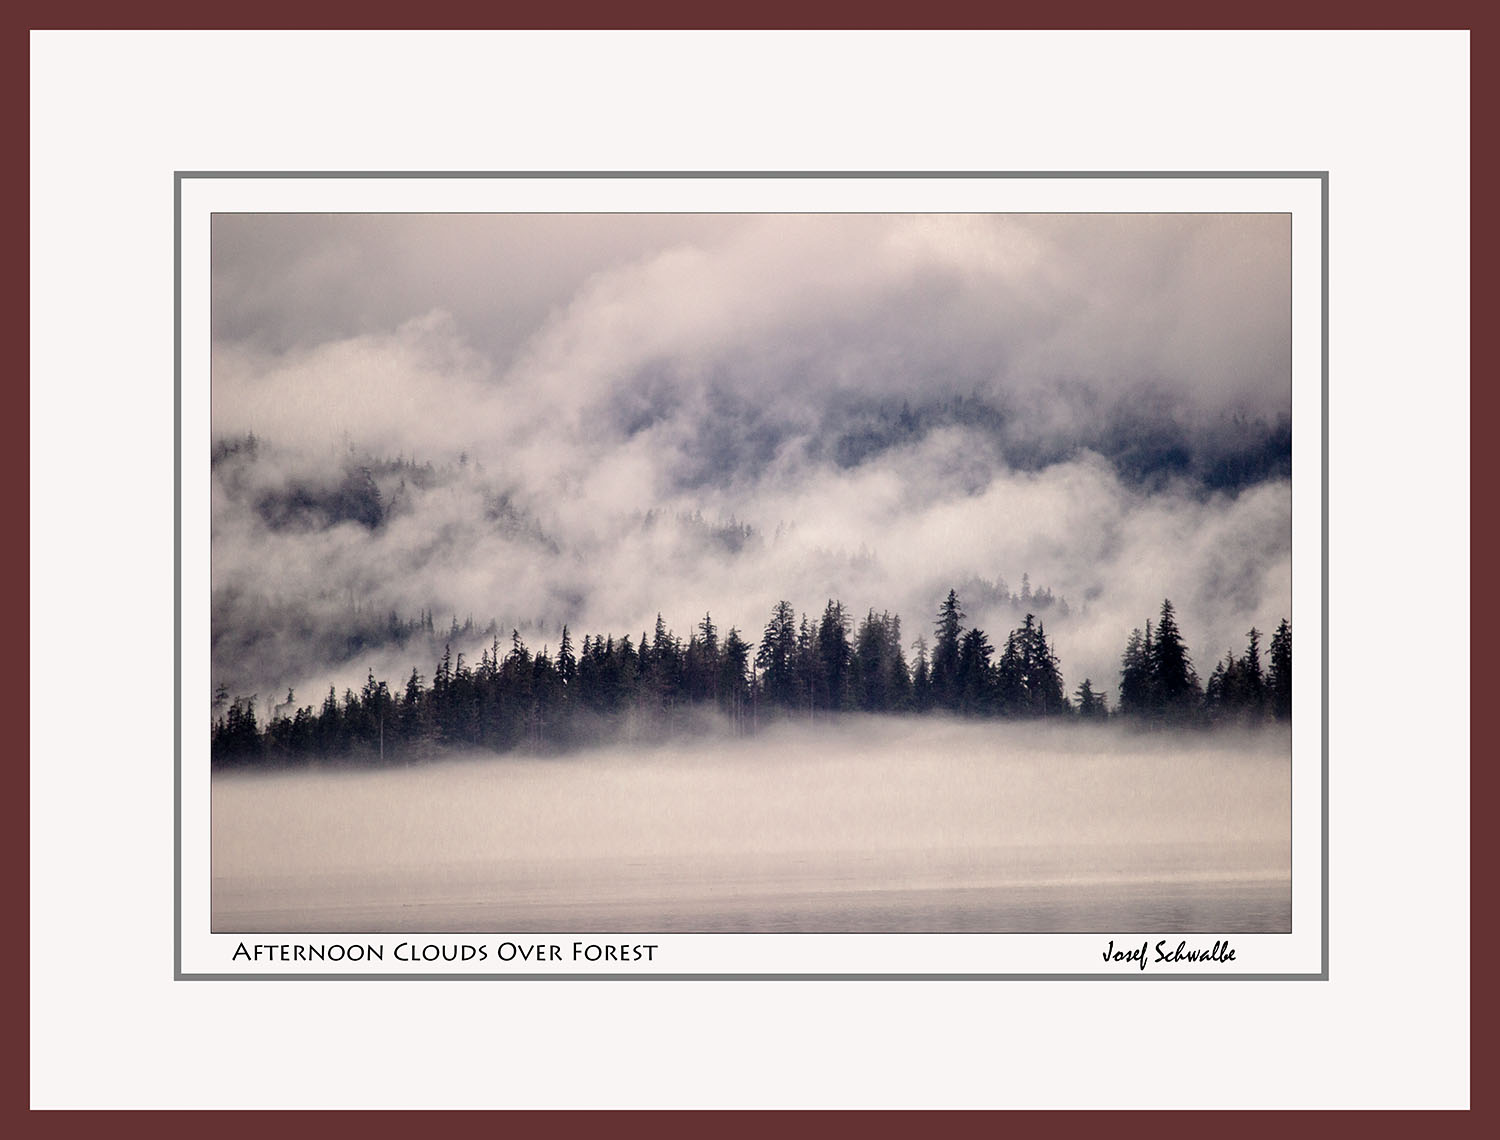 Afternoon Clouds Over Forest